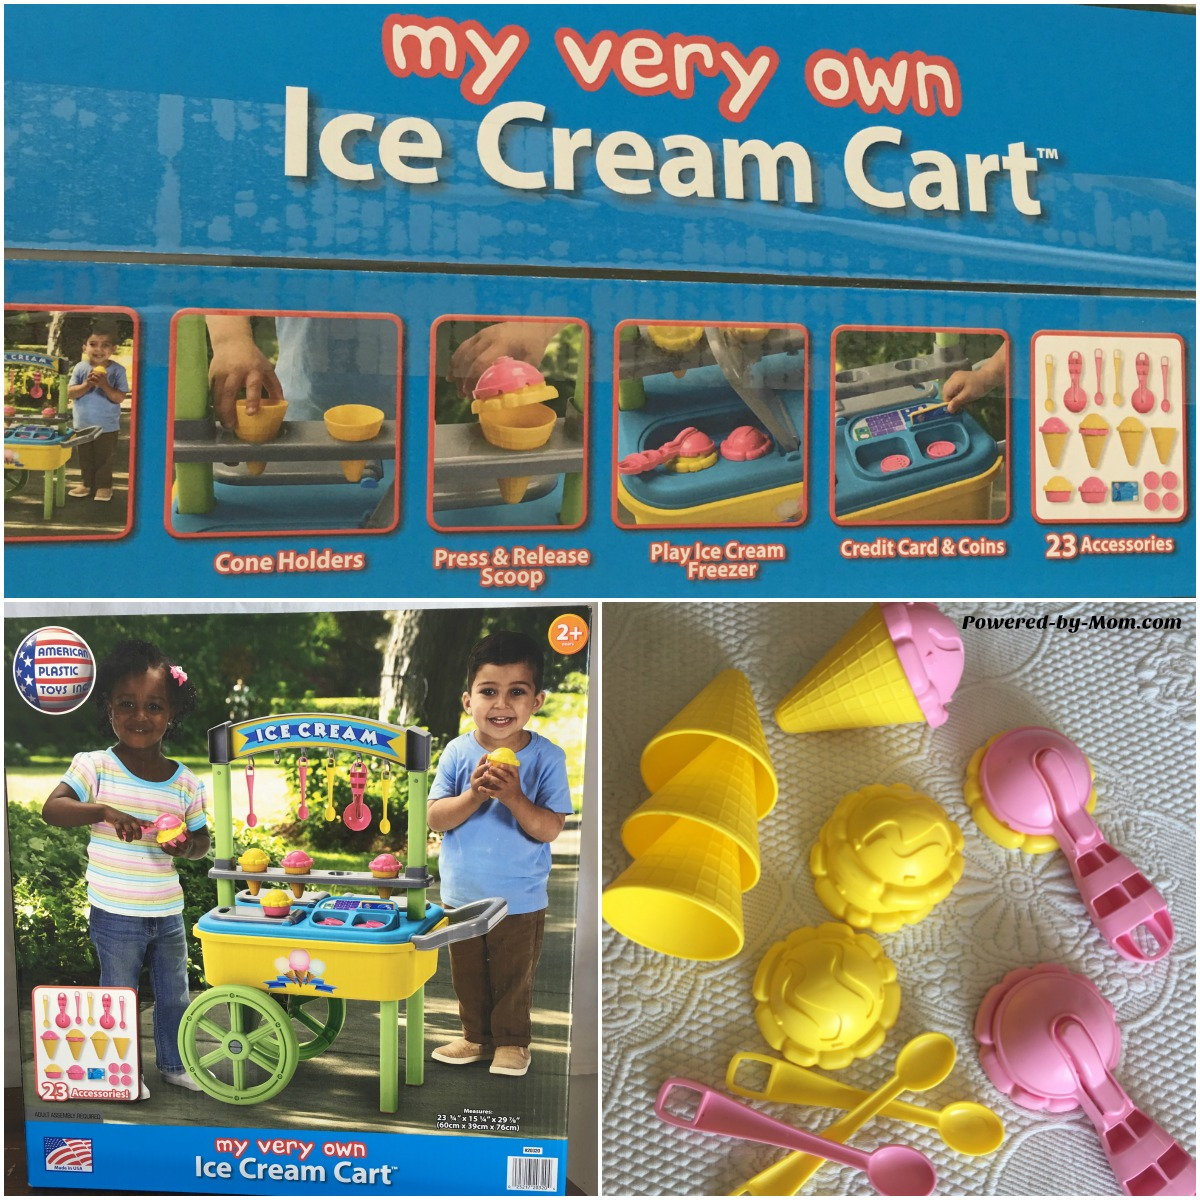 Imaginative Play with American Plastics Toy Review - Powered by Mom